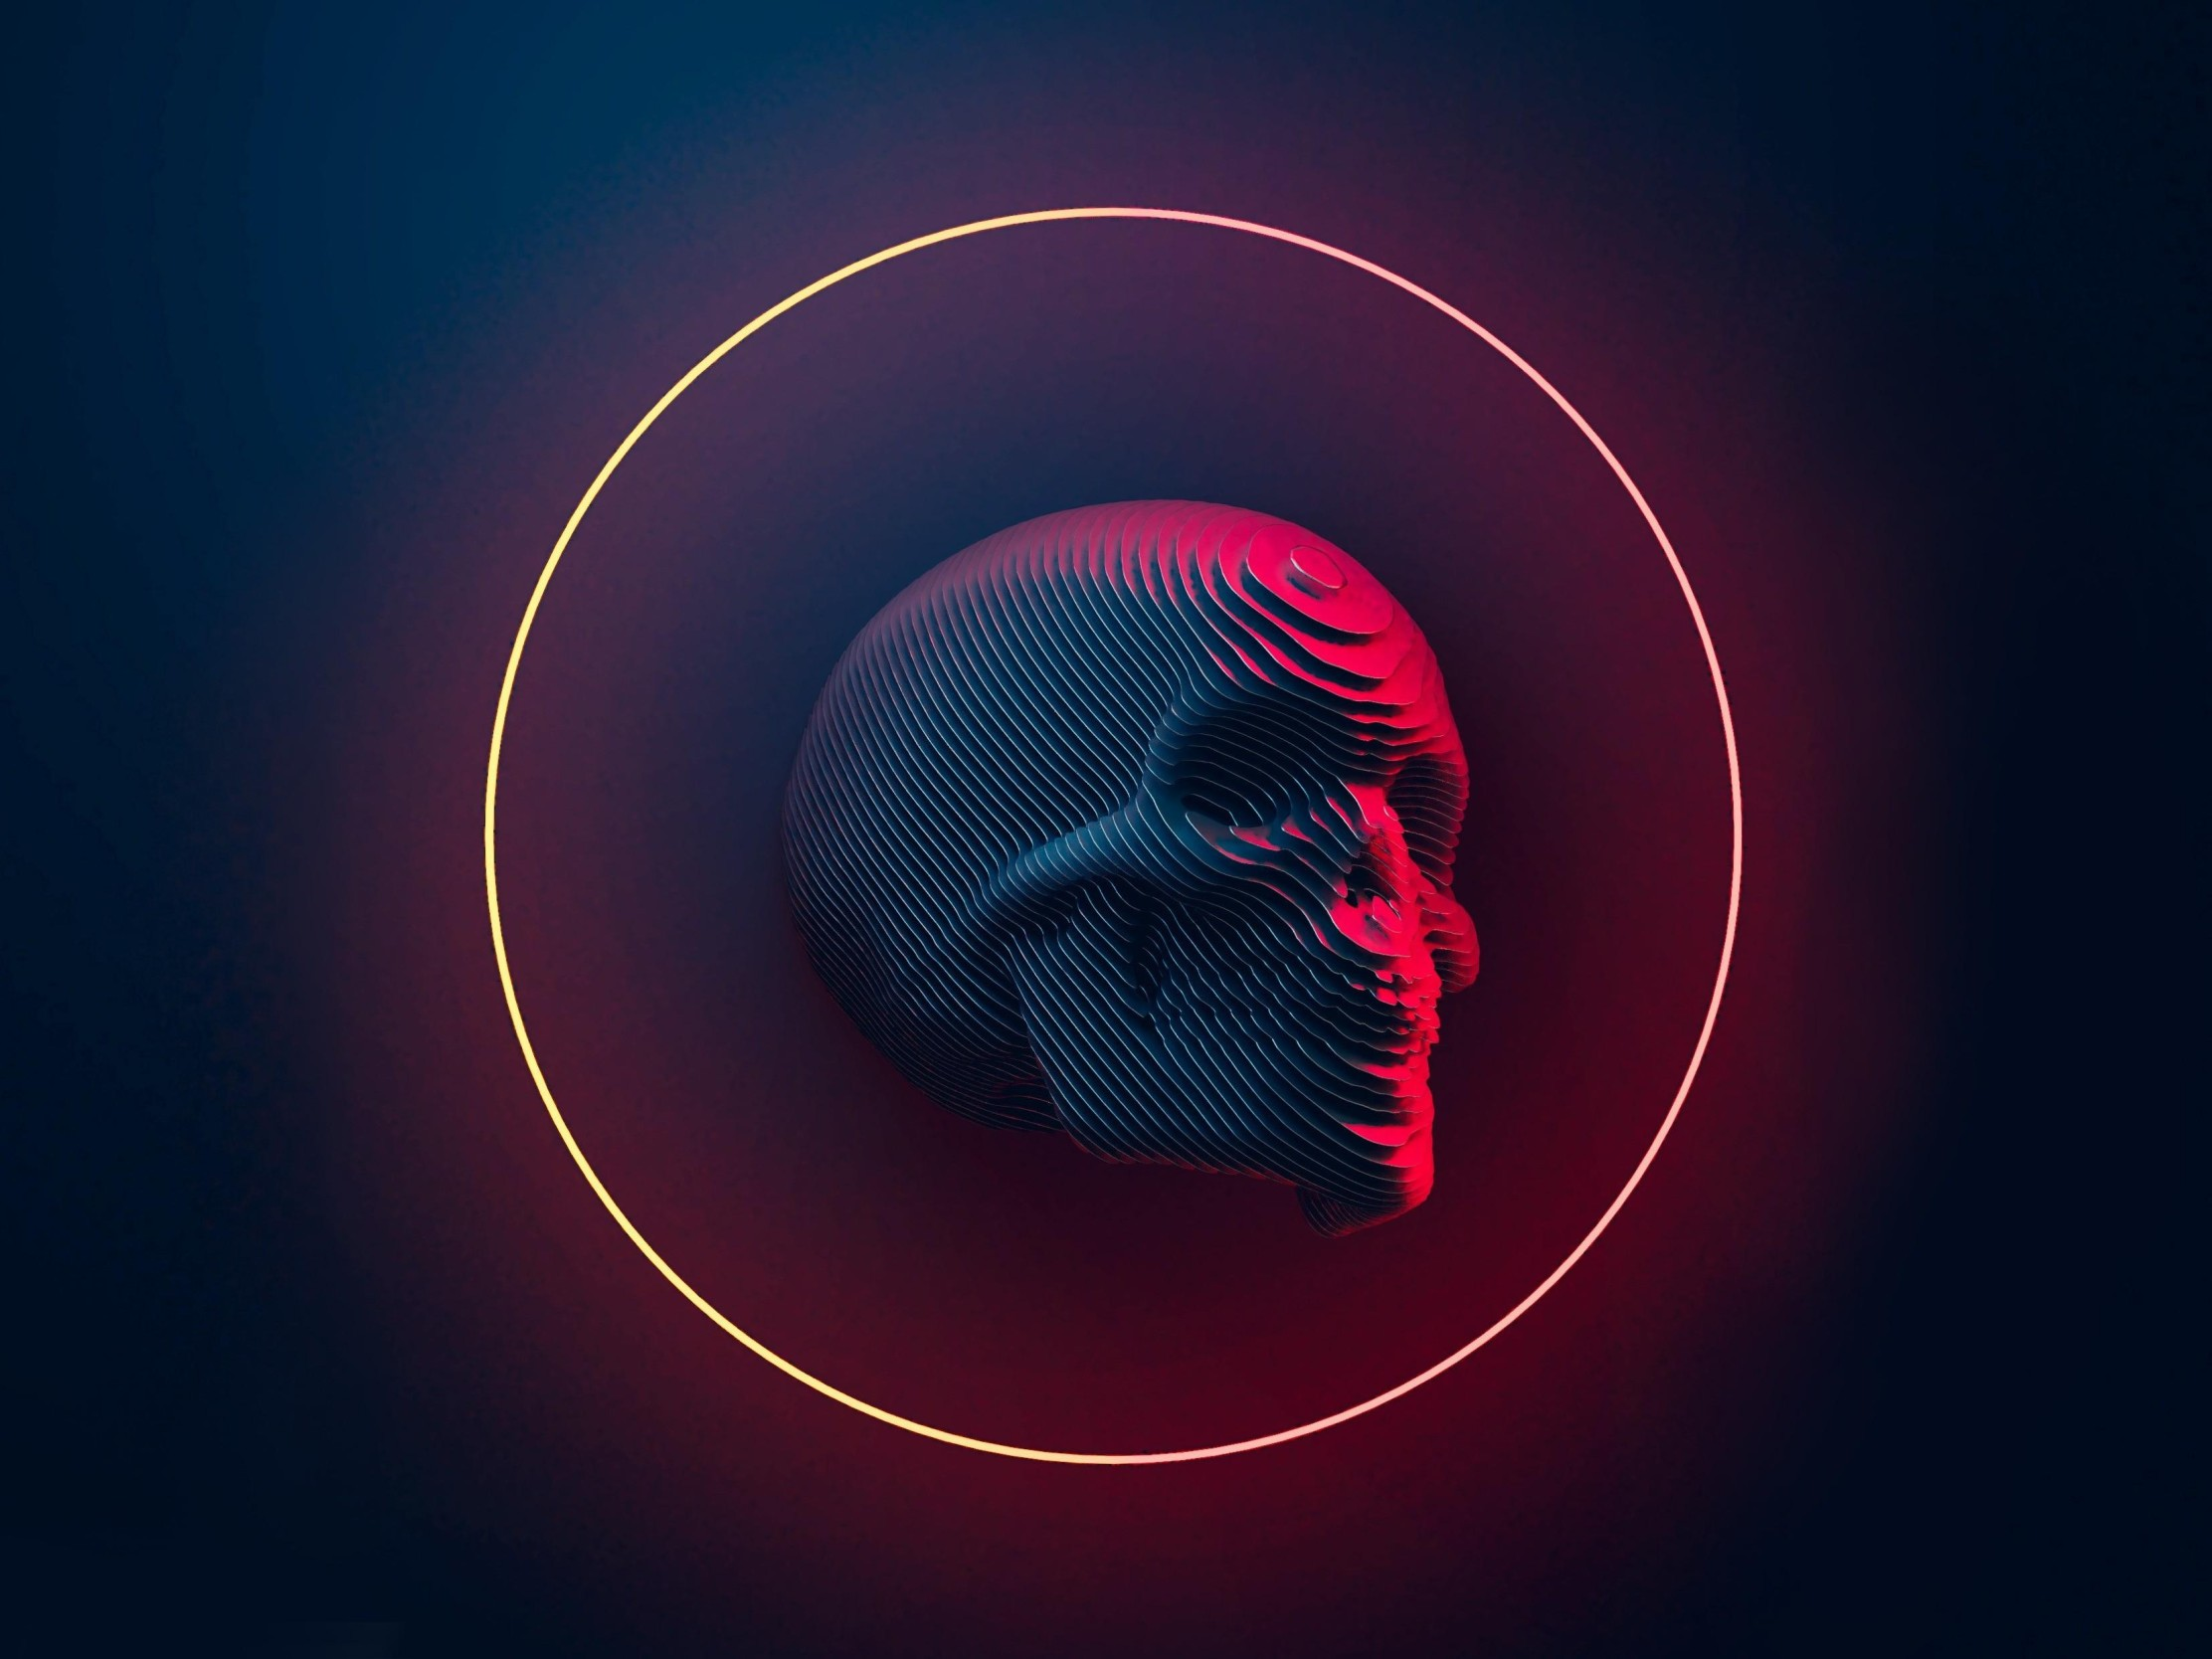 Just Another Skull 4k Wallpaper Ipad Pro Wallpaper The Hot Desktop Wallpapers And Backgrounds For Your Pc And Mobile